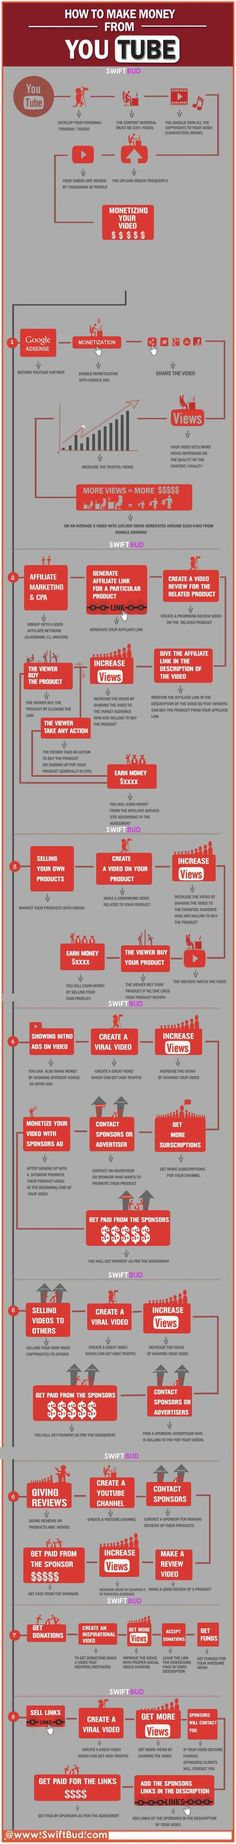 """The infographic """"How To Make Money Online From YouTube"""" was presented by: www.SwiftBud.com T (...)"""